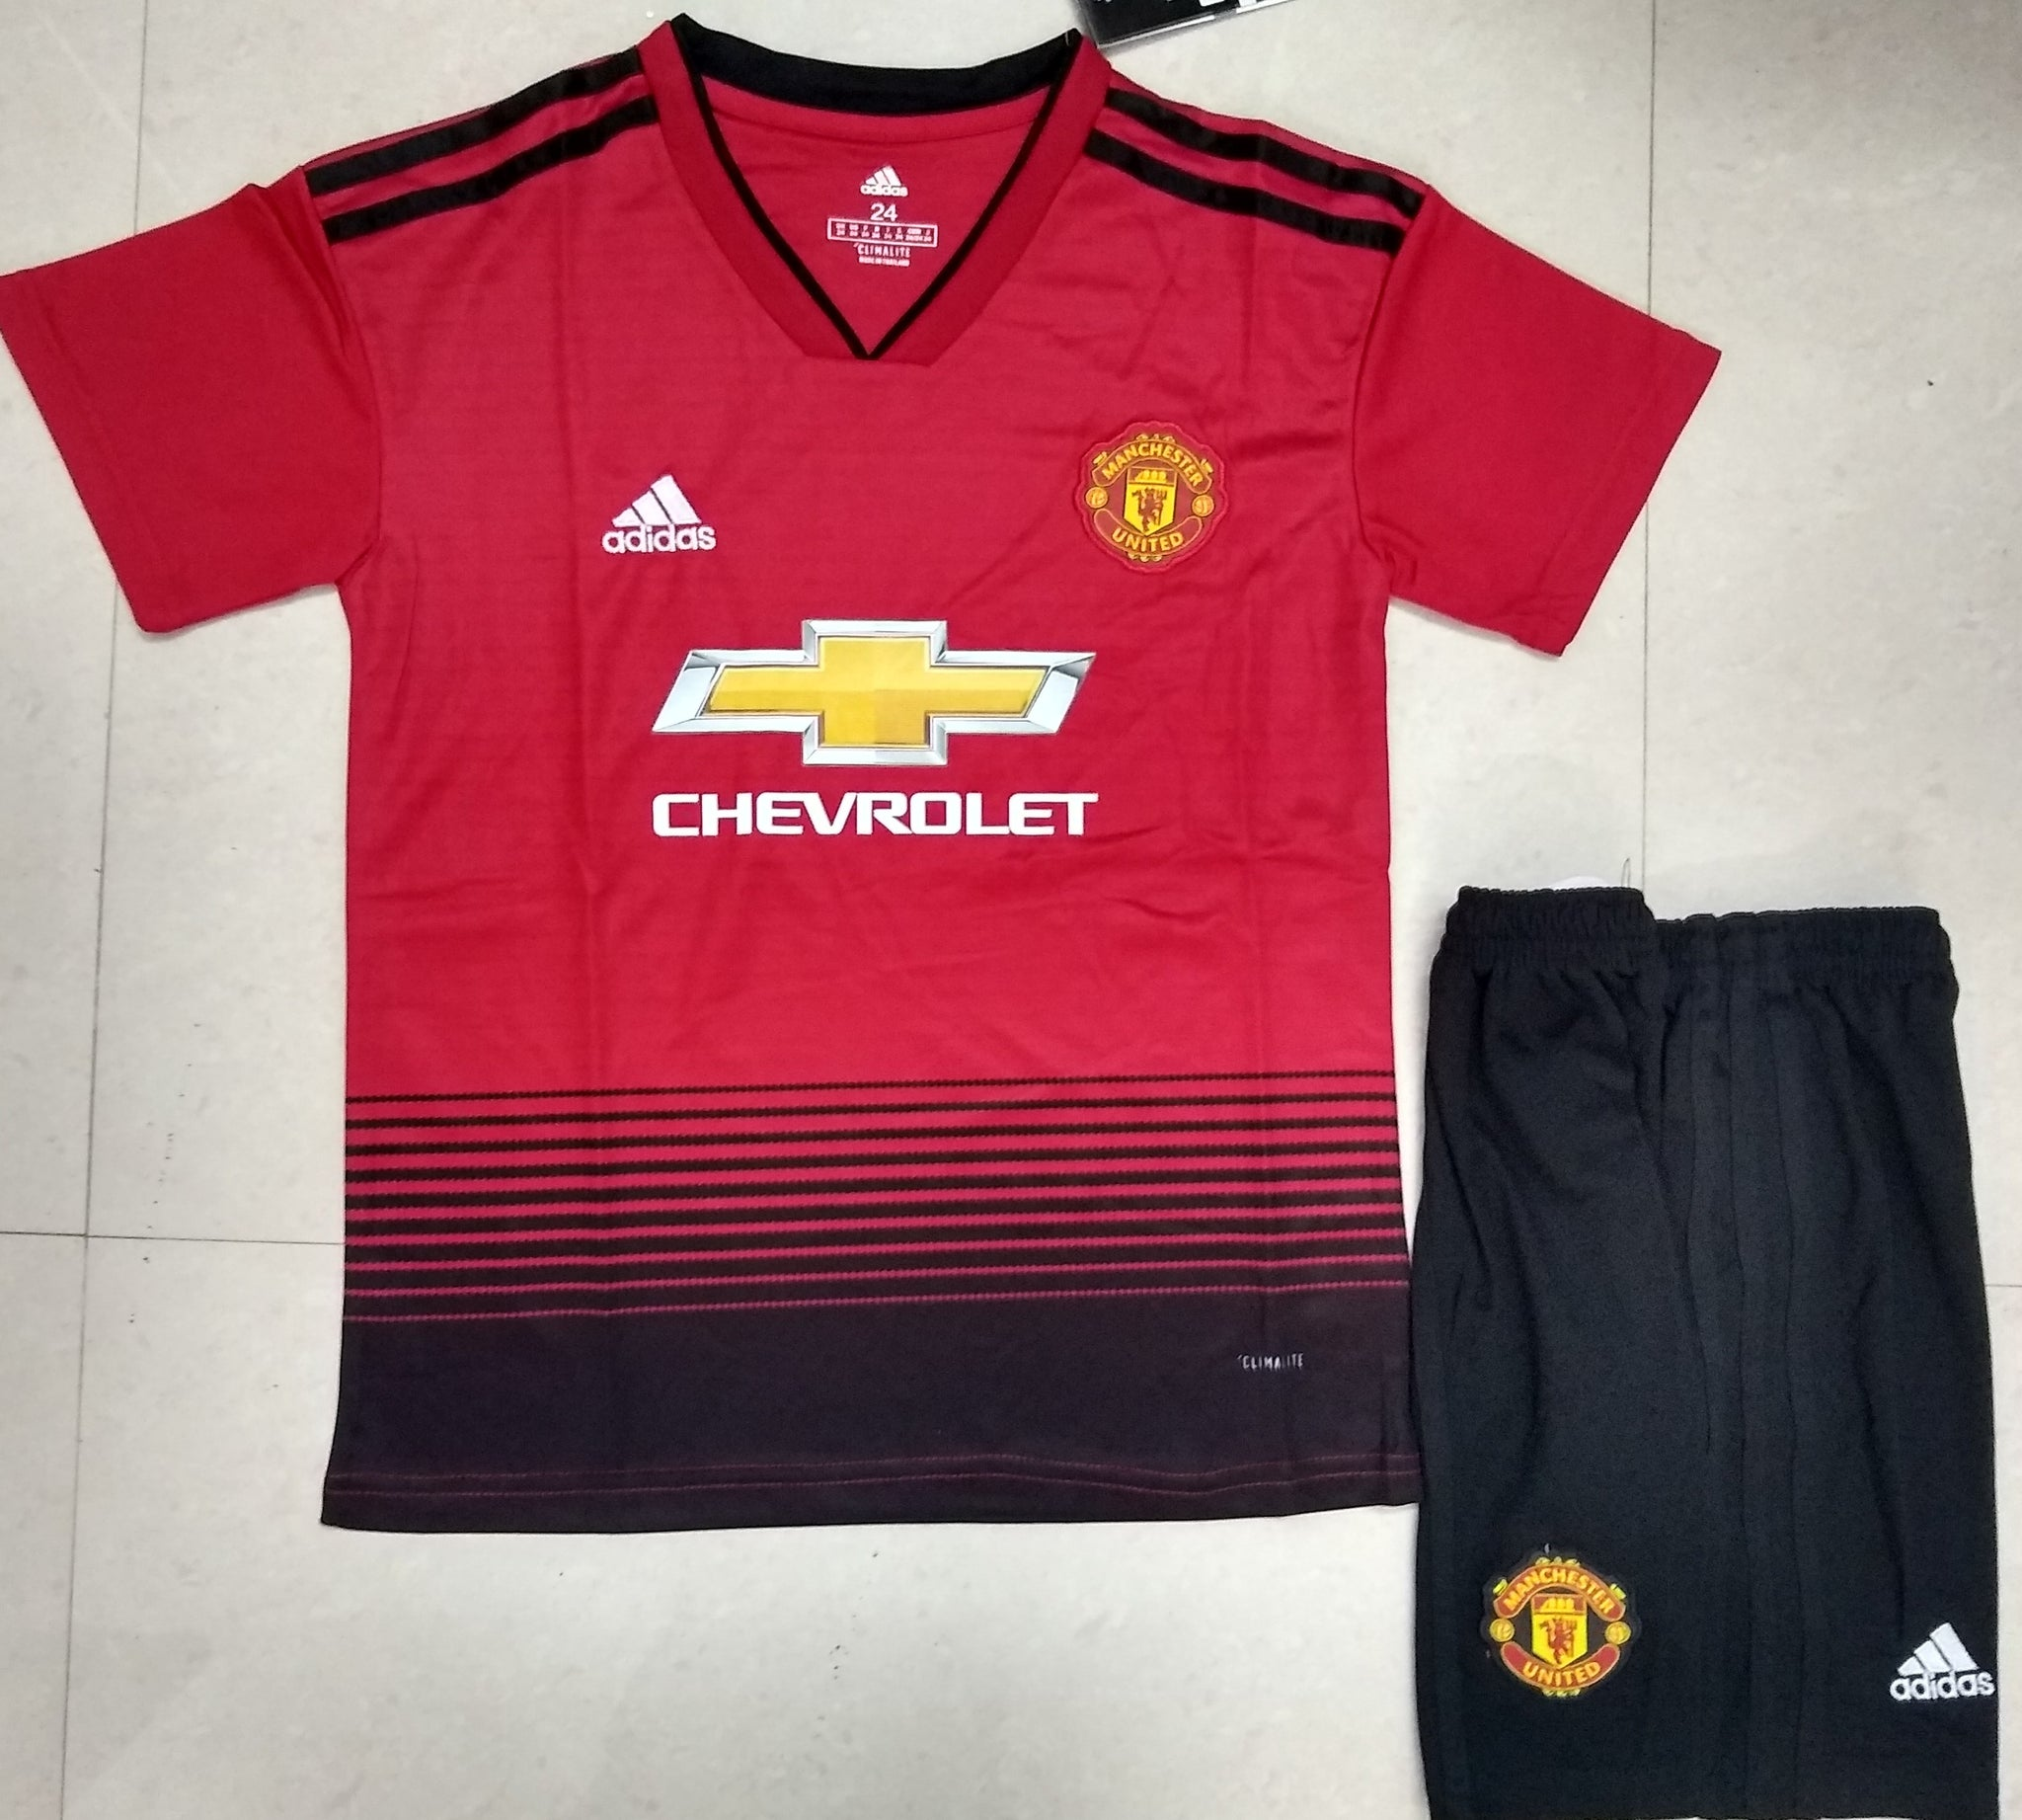 reputable site 24a1a ff641 Buy Manchester United T Shirts Online India | Azərbaycan ...